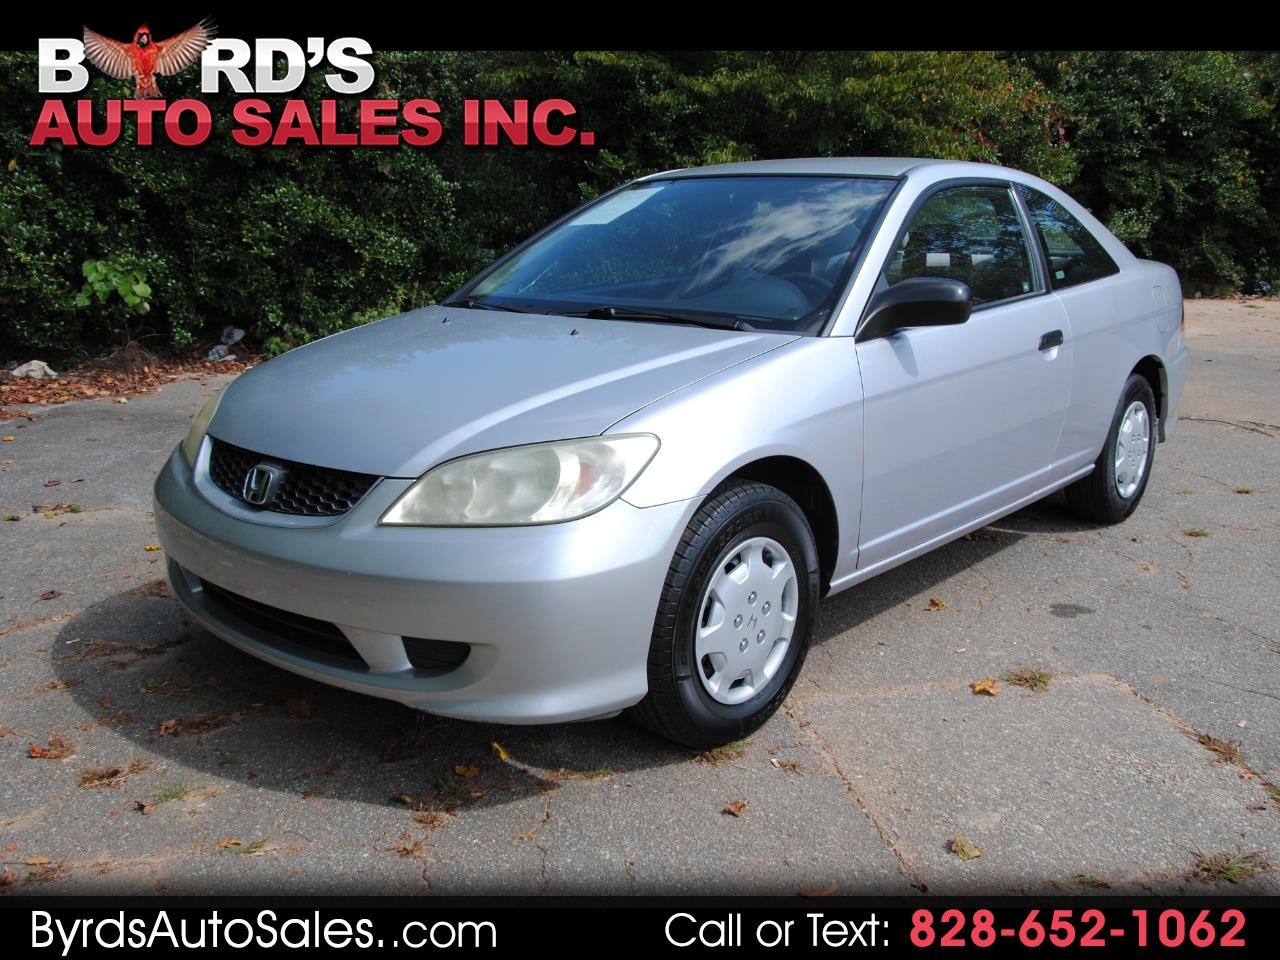 2004 Honda Civic 2dr Cpe VP Auto